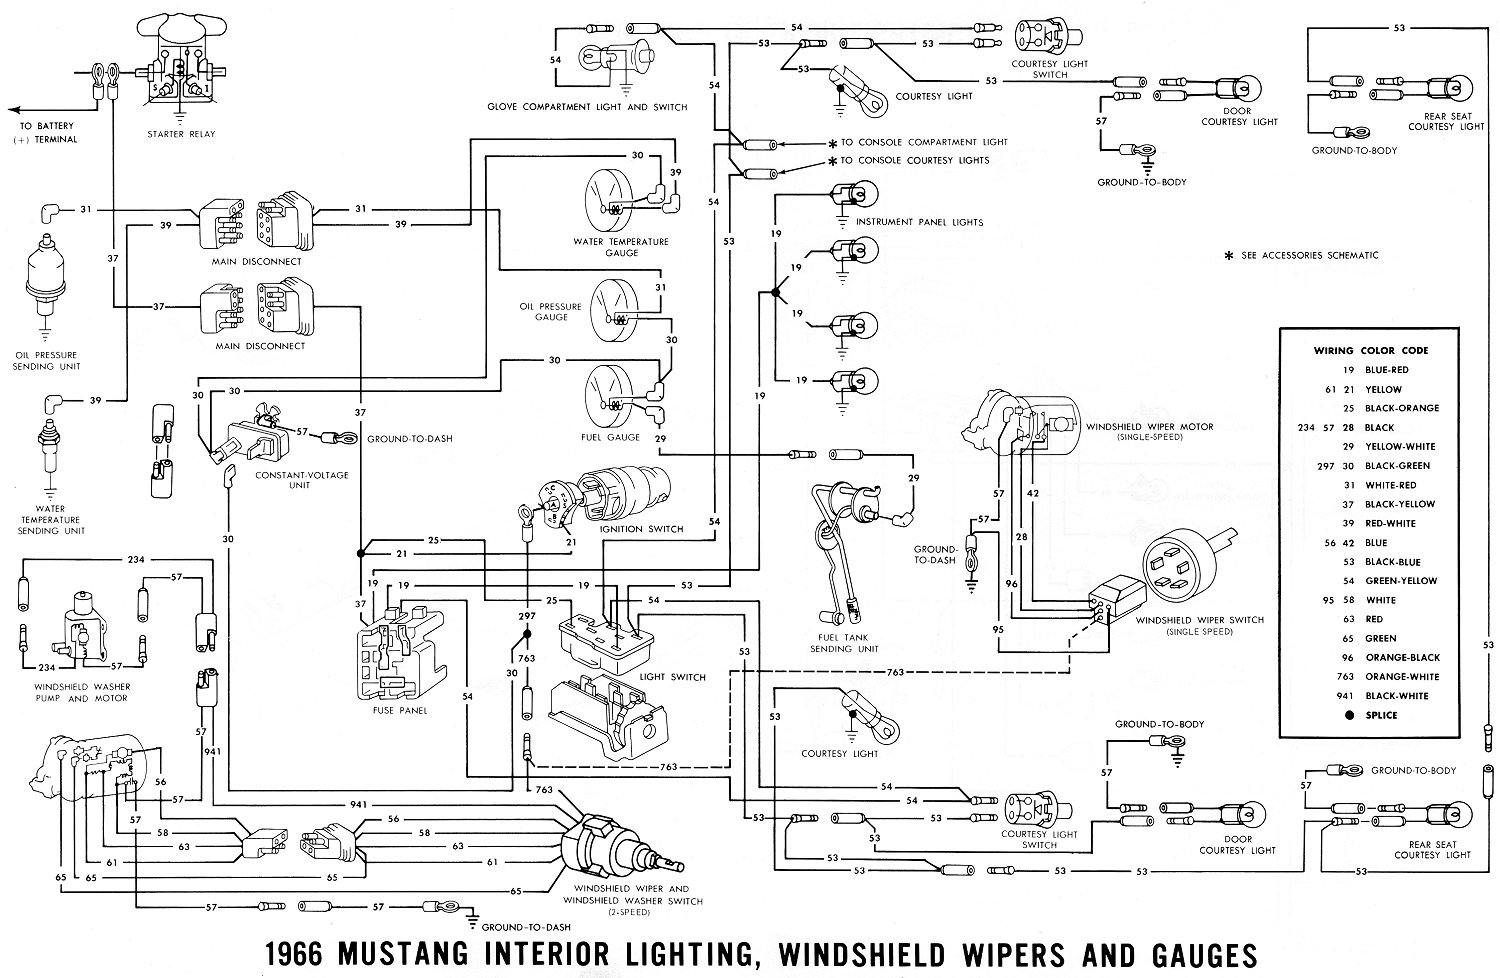 66inter1 1966 mustang wiring diagrams average joe restoration 1970 mustang wiring diagram pdf at bakdesigns.co